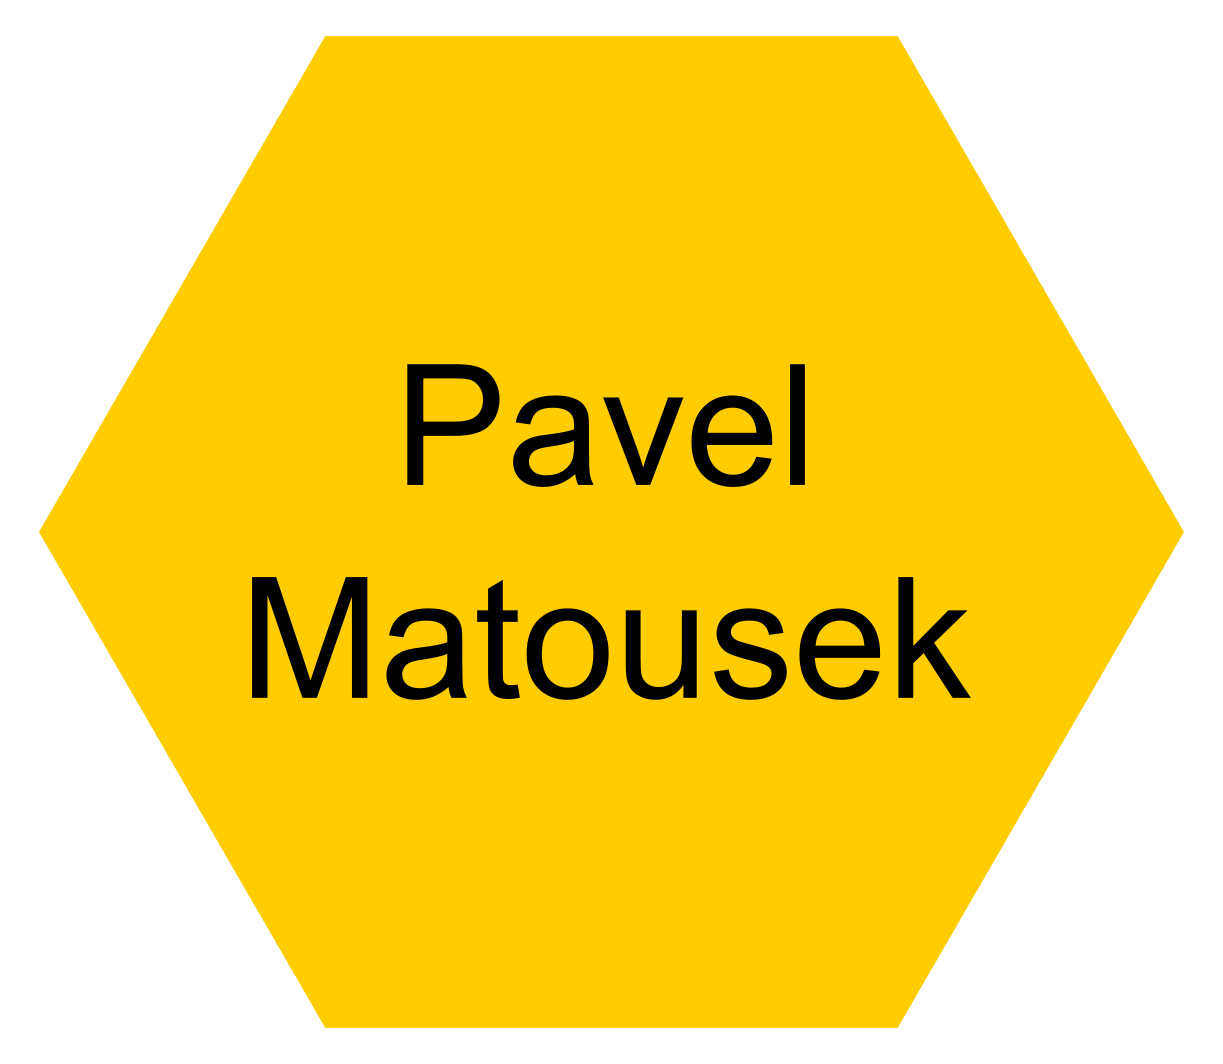 Prof. Pavel Matousek (Rutherford Appleton Laboratory: Principal Investigator) - Click this icon to reveal their contact details.